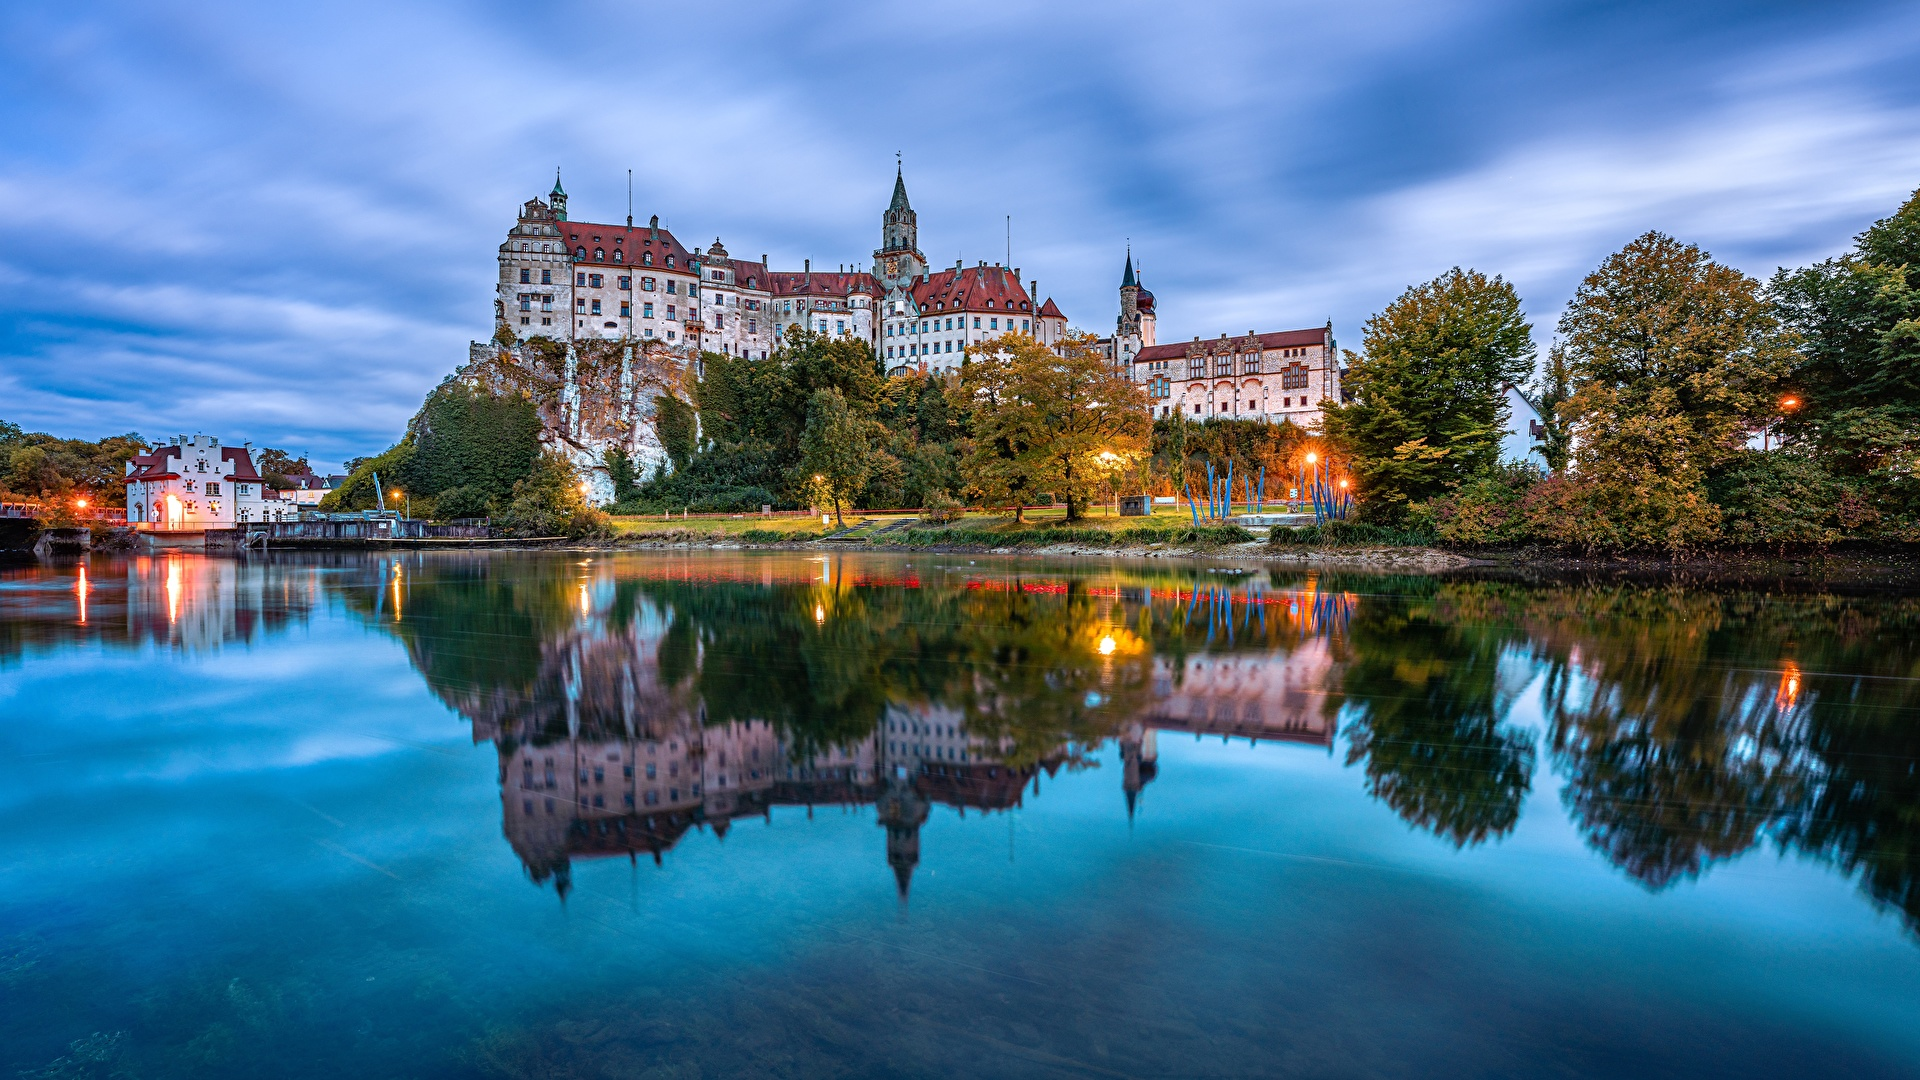 Image Germany Sigmaringen Castle castle Reflection river Cities 1920x1080 Castles reflected Rivers